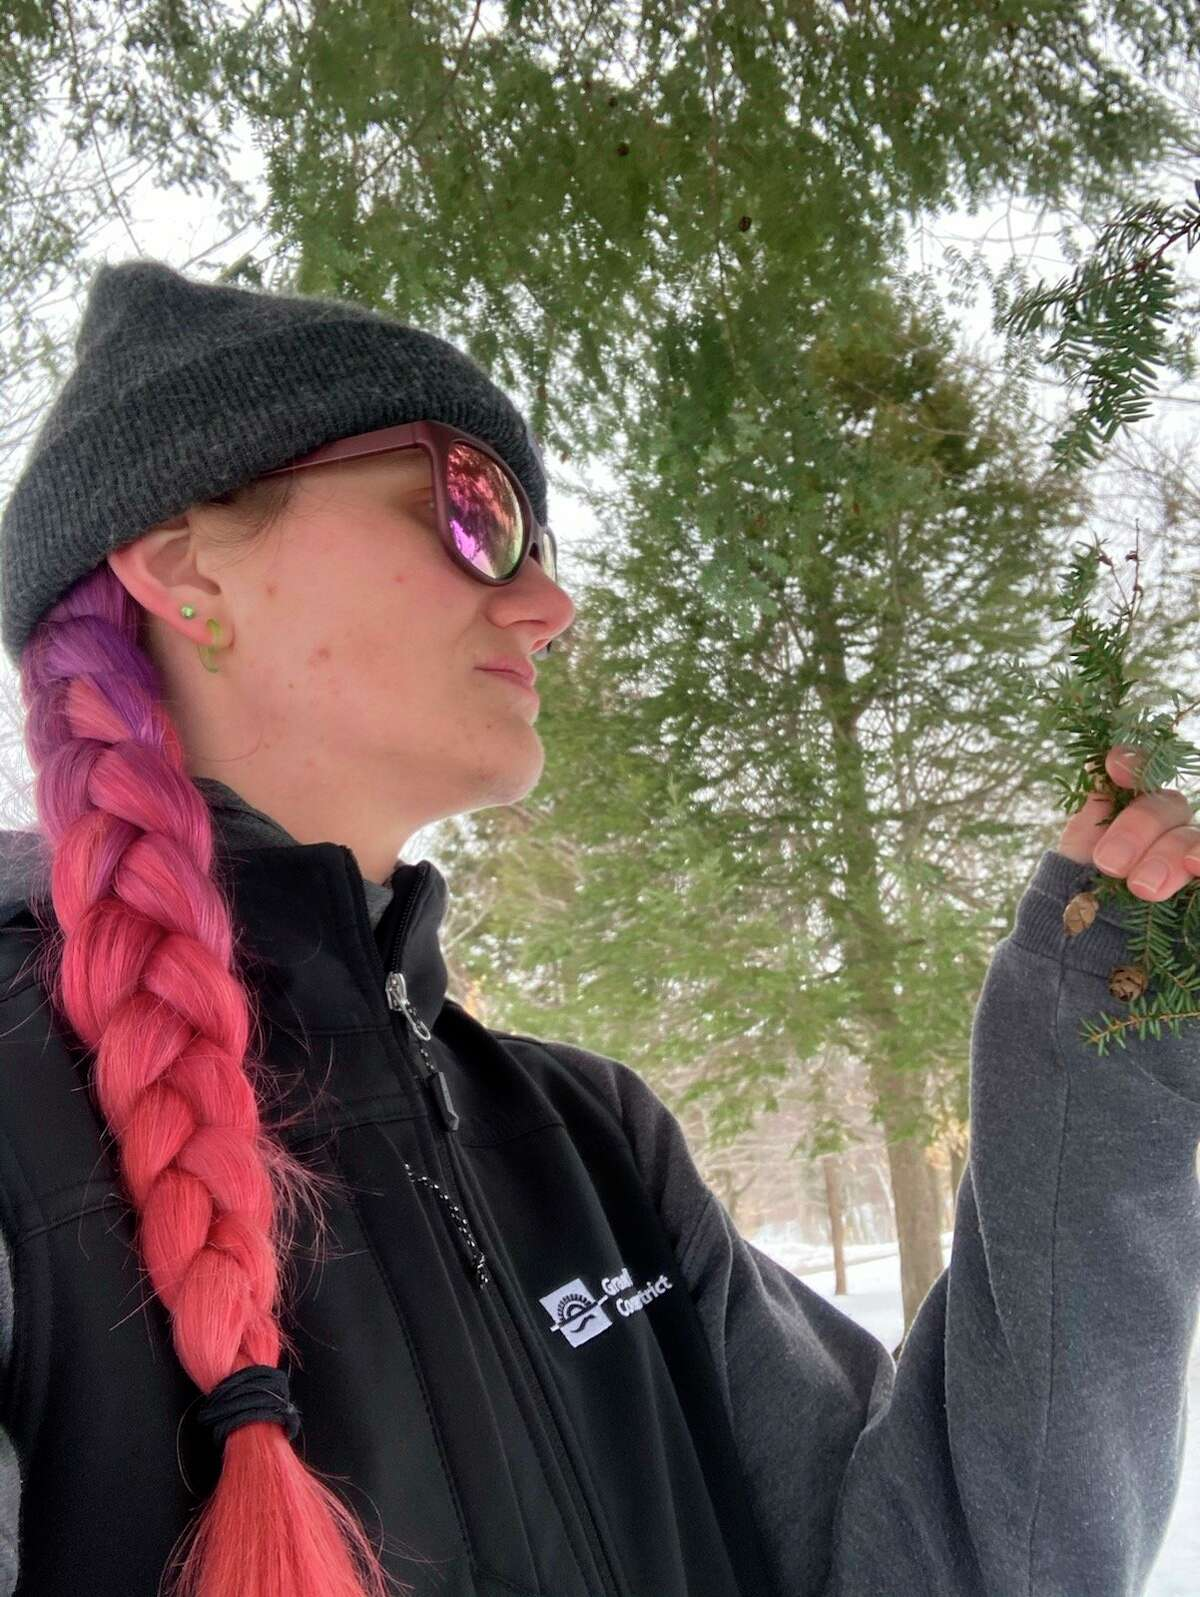 The Northwest Michigan Invasive Species Network (ISN) and partners are seeking survey assistance from community scientists afterthe hemlock woolly adelgid (HWA) was just discovered in northern Benzie County, within Sleeping Bear Dunes National Lakeshore. (Courtesy photo)